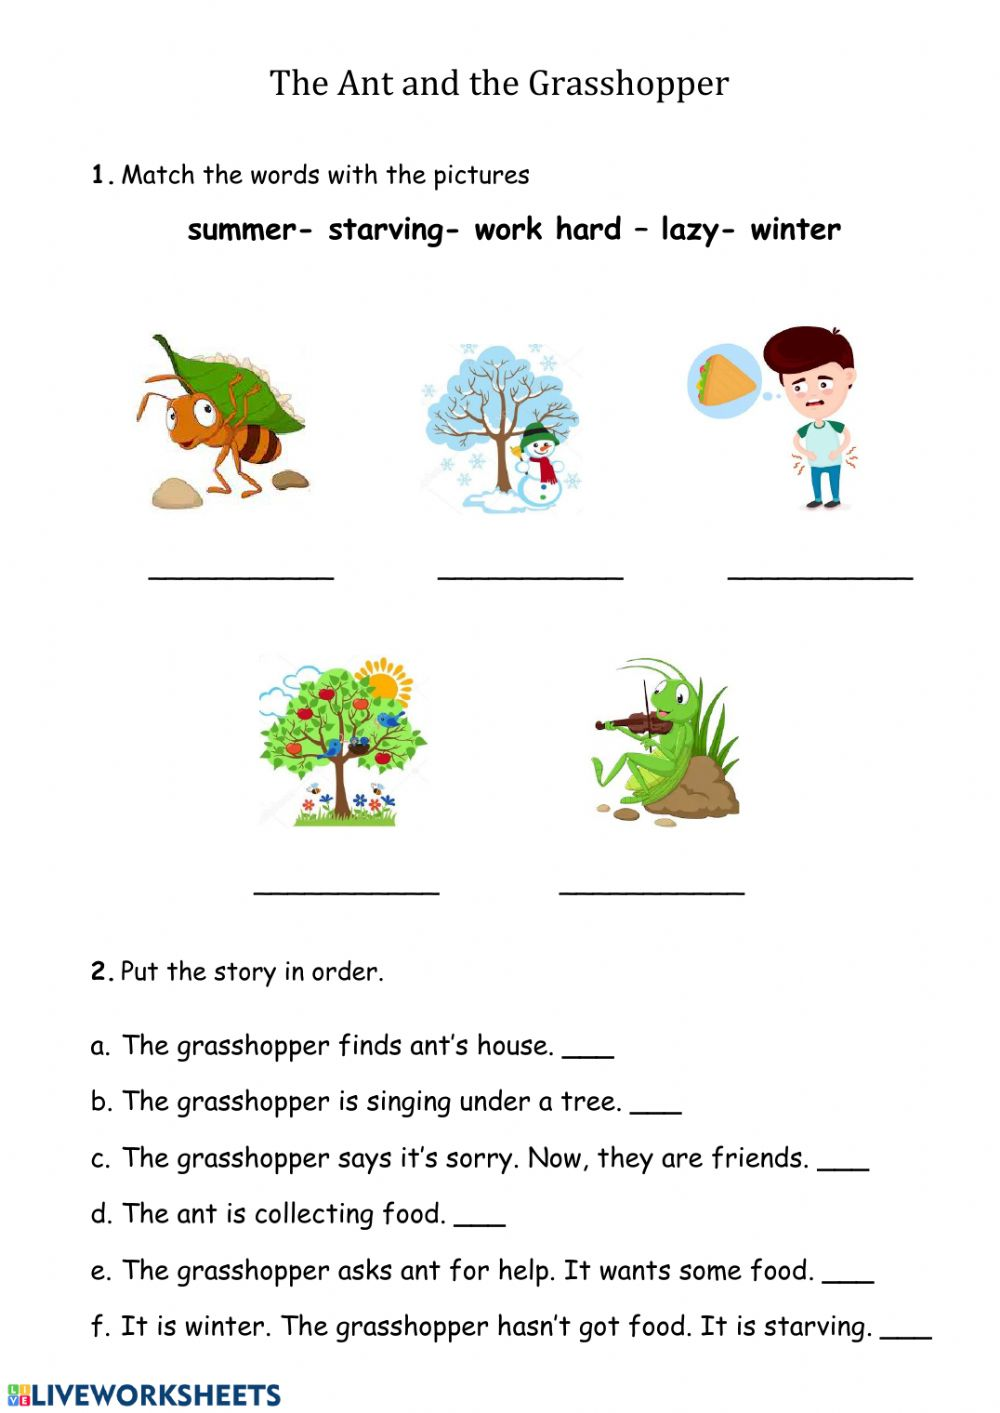 The ant and the grasshopper - Interactive worksheet